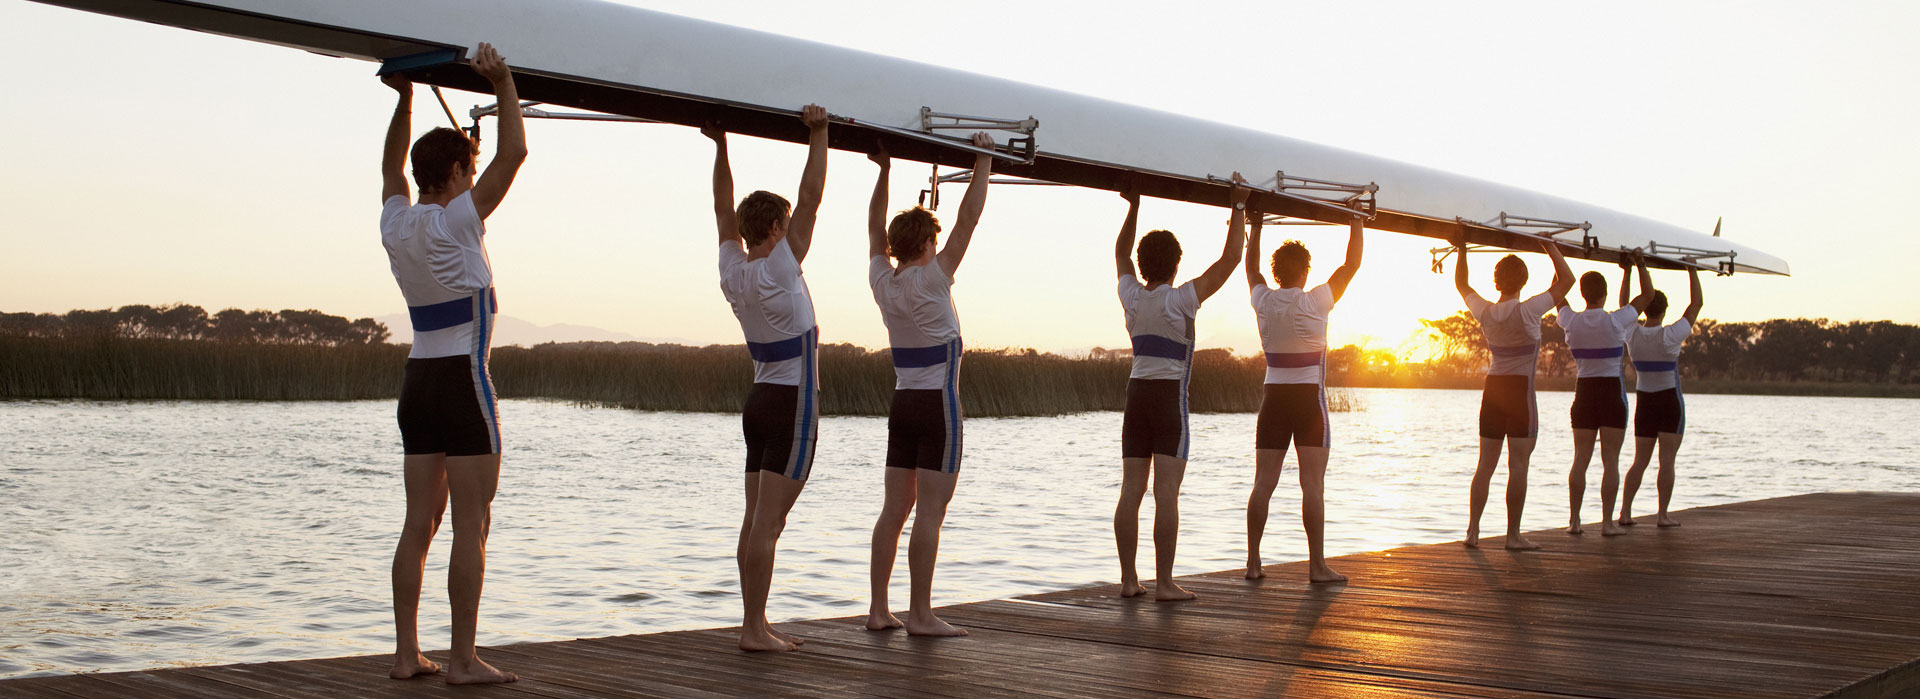 Rowing team symbolizes our professionals combining their talents, knowledge and passion to deliver superior customer service